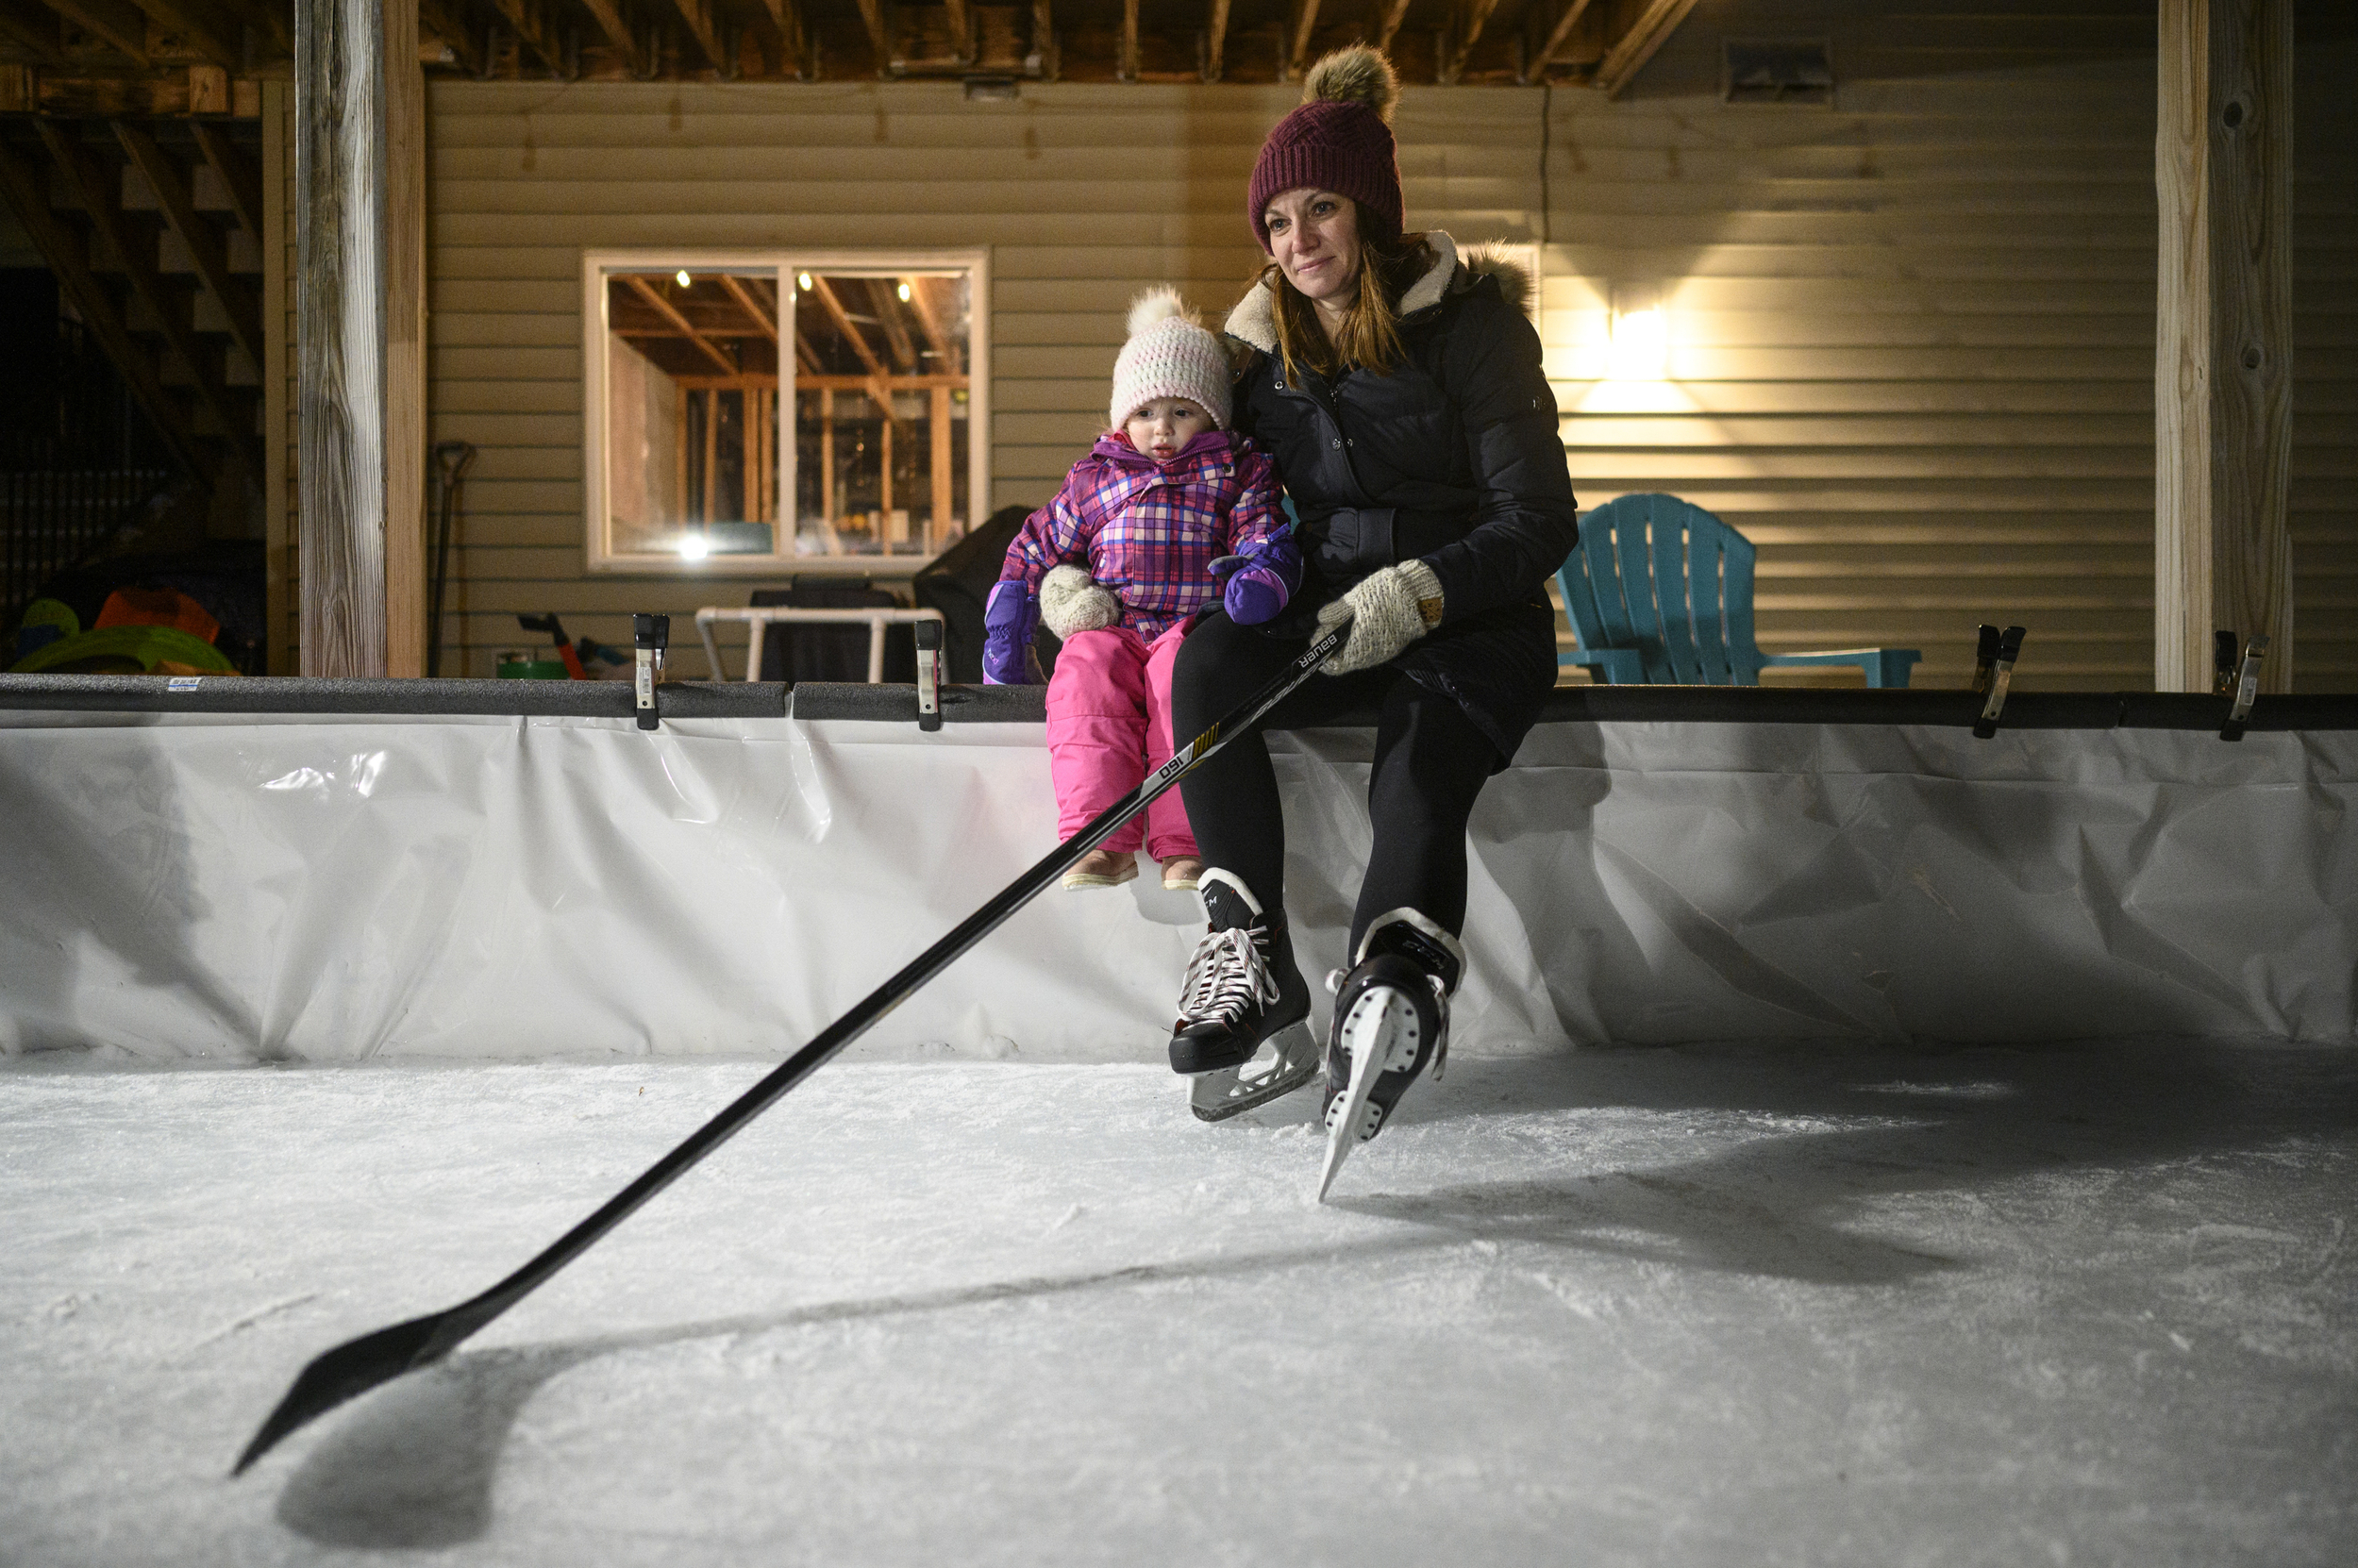 Holly Vilione sat with her 2-year old daughter, Nora, while taking a break from playing some backyard hockey with her kids and nieces in late January.